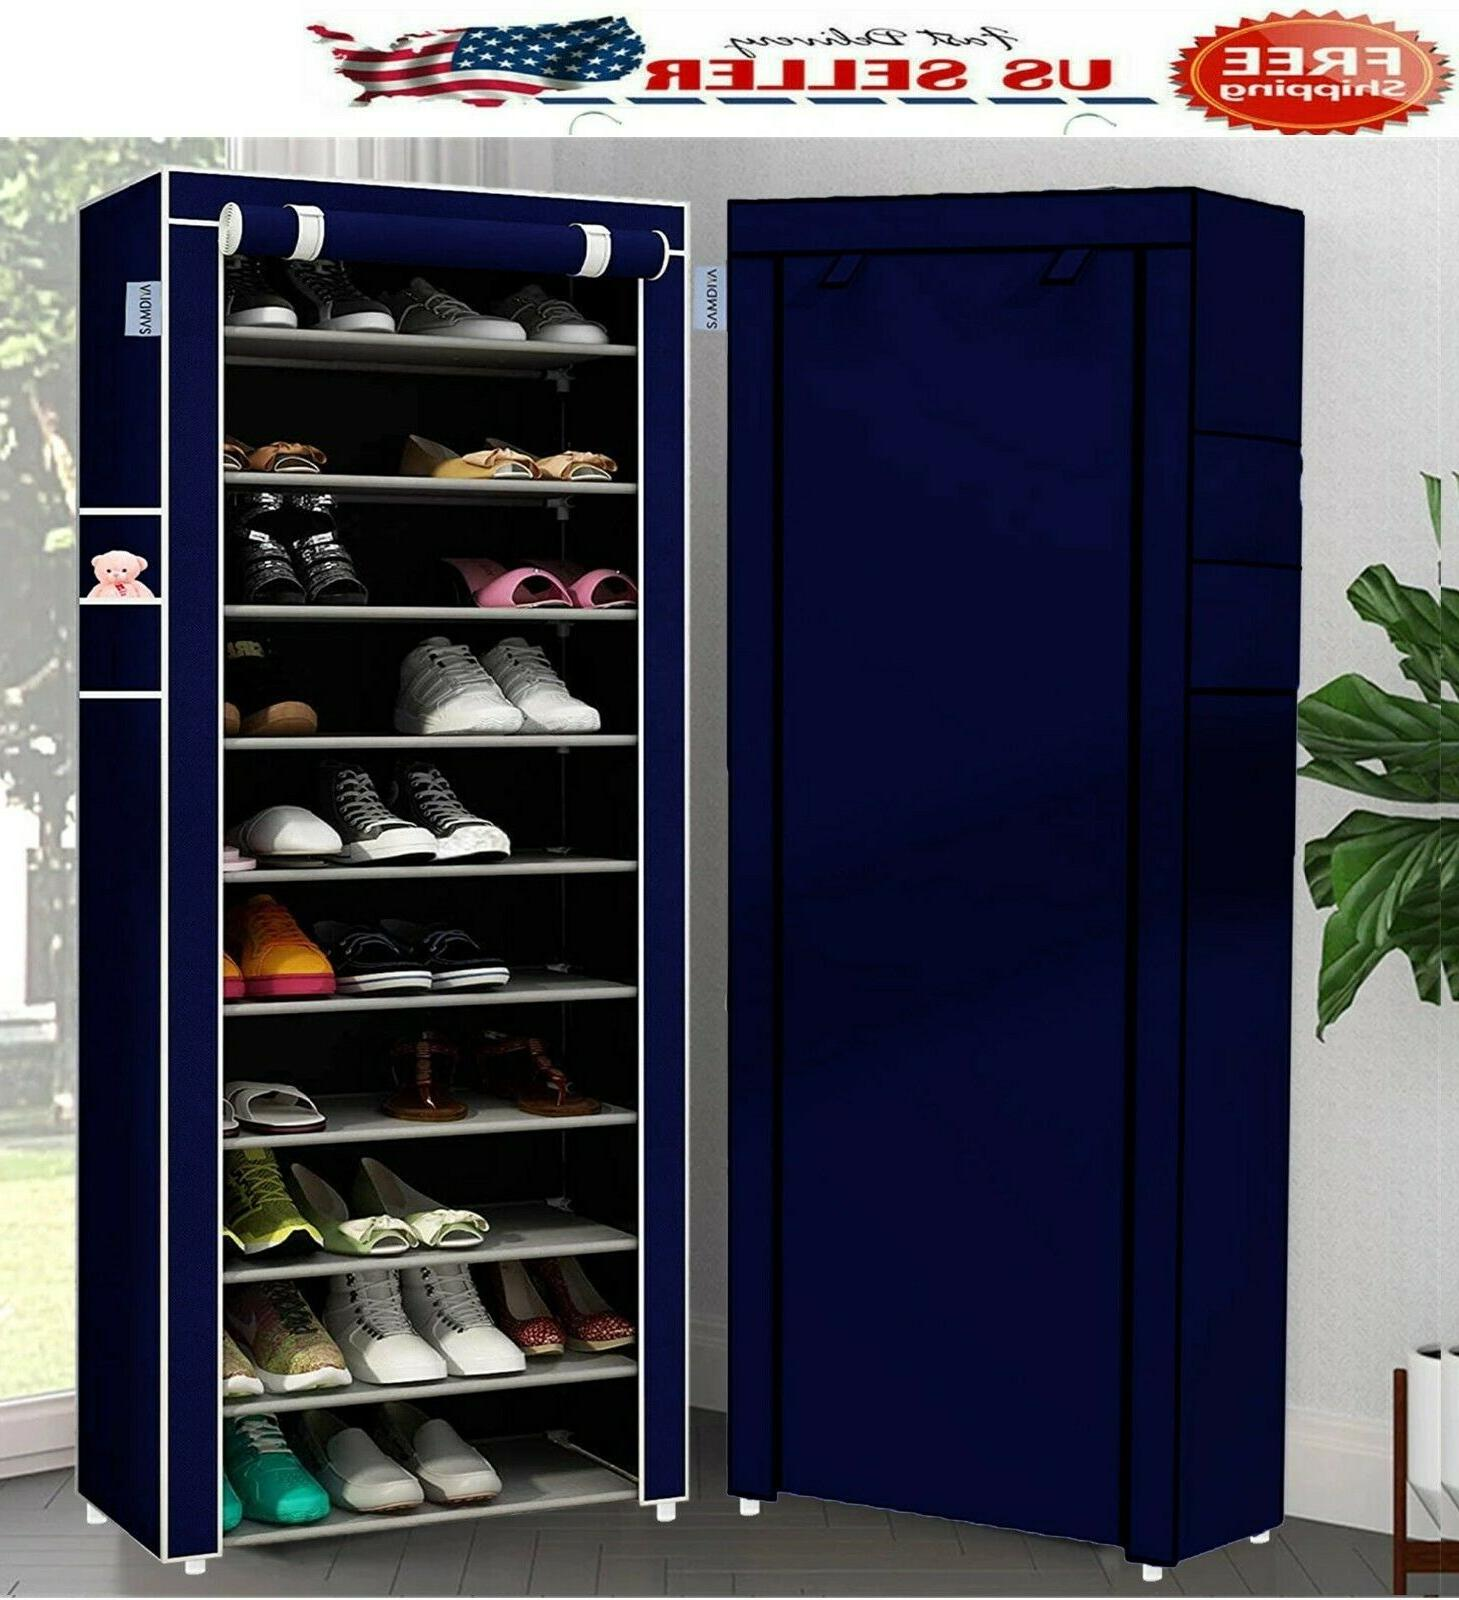 10 Tier Shoe Organizer Cabinet with Cover Rack